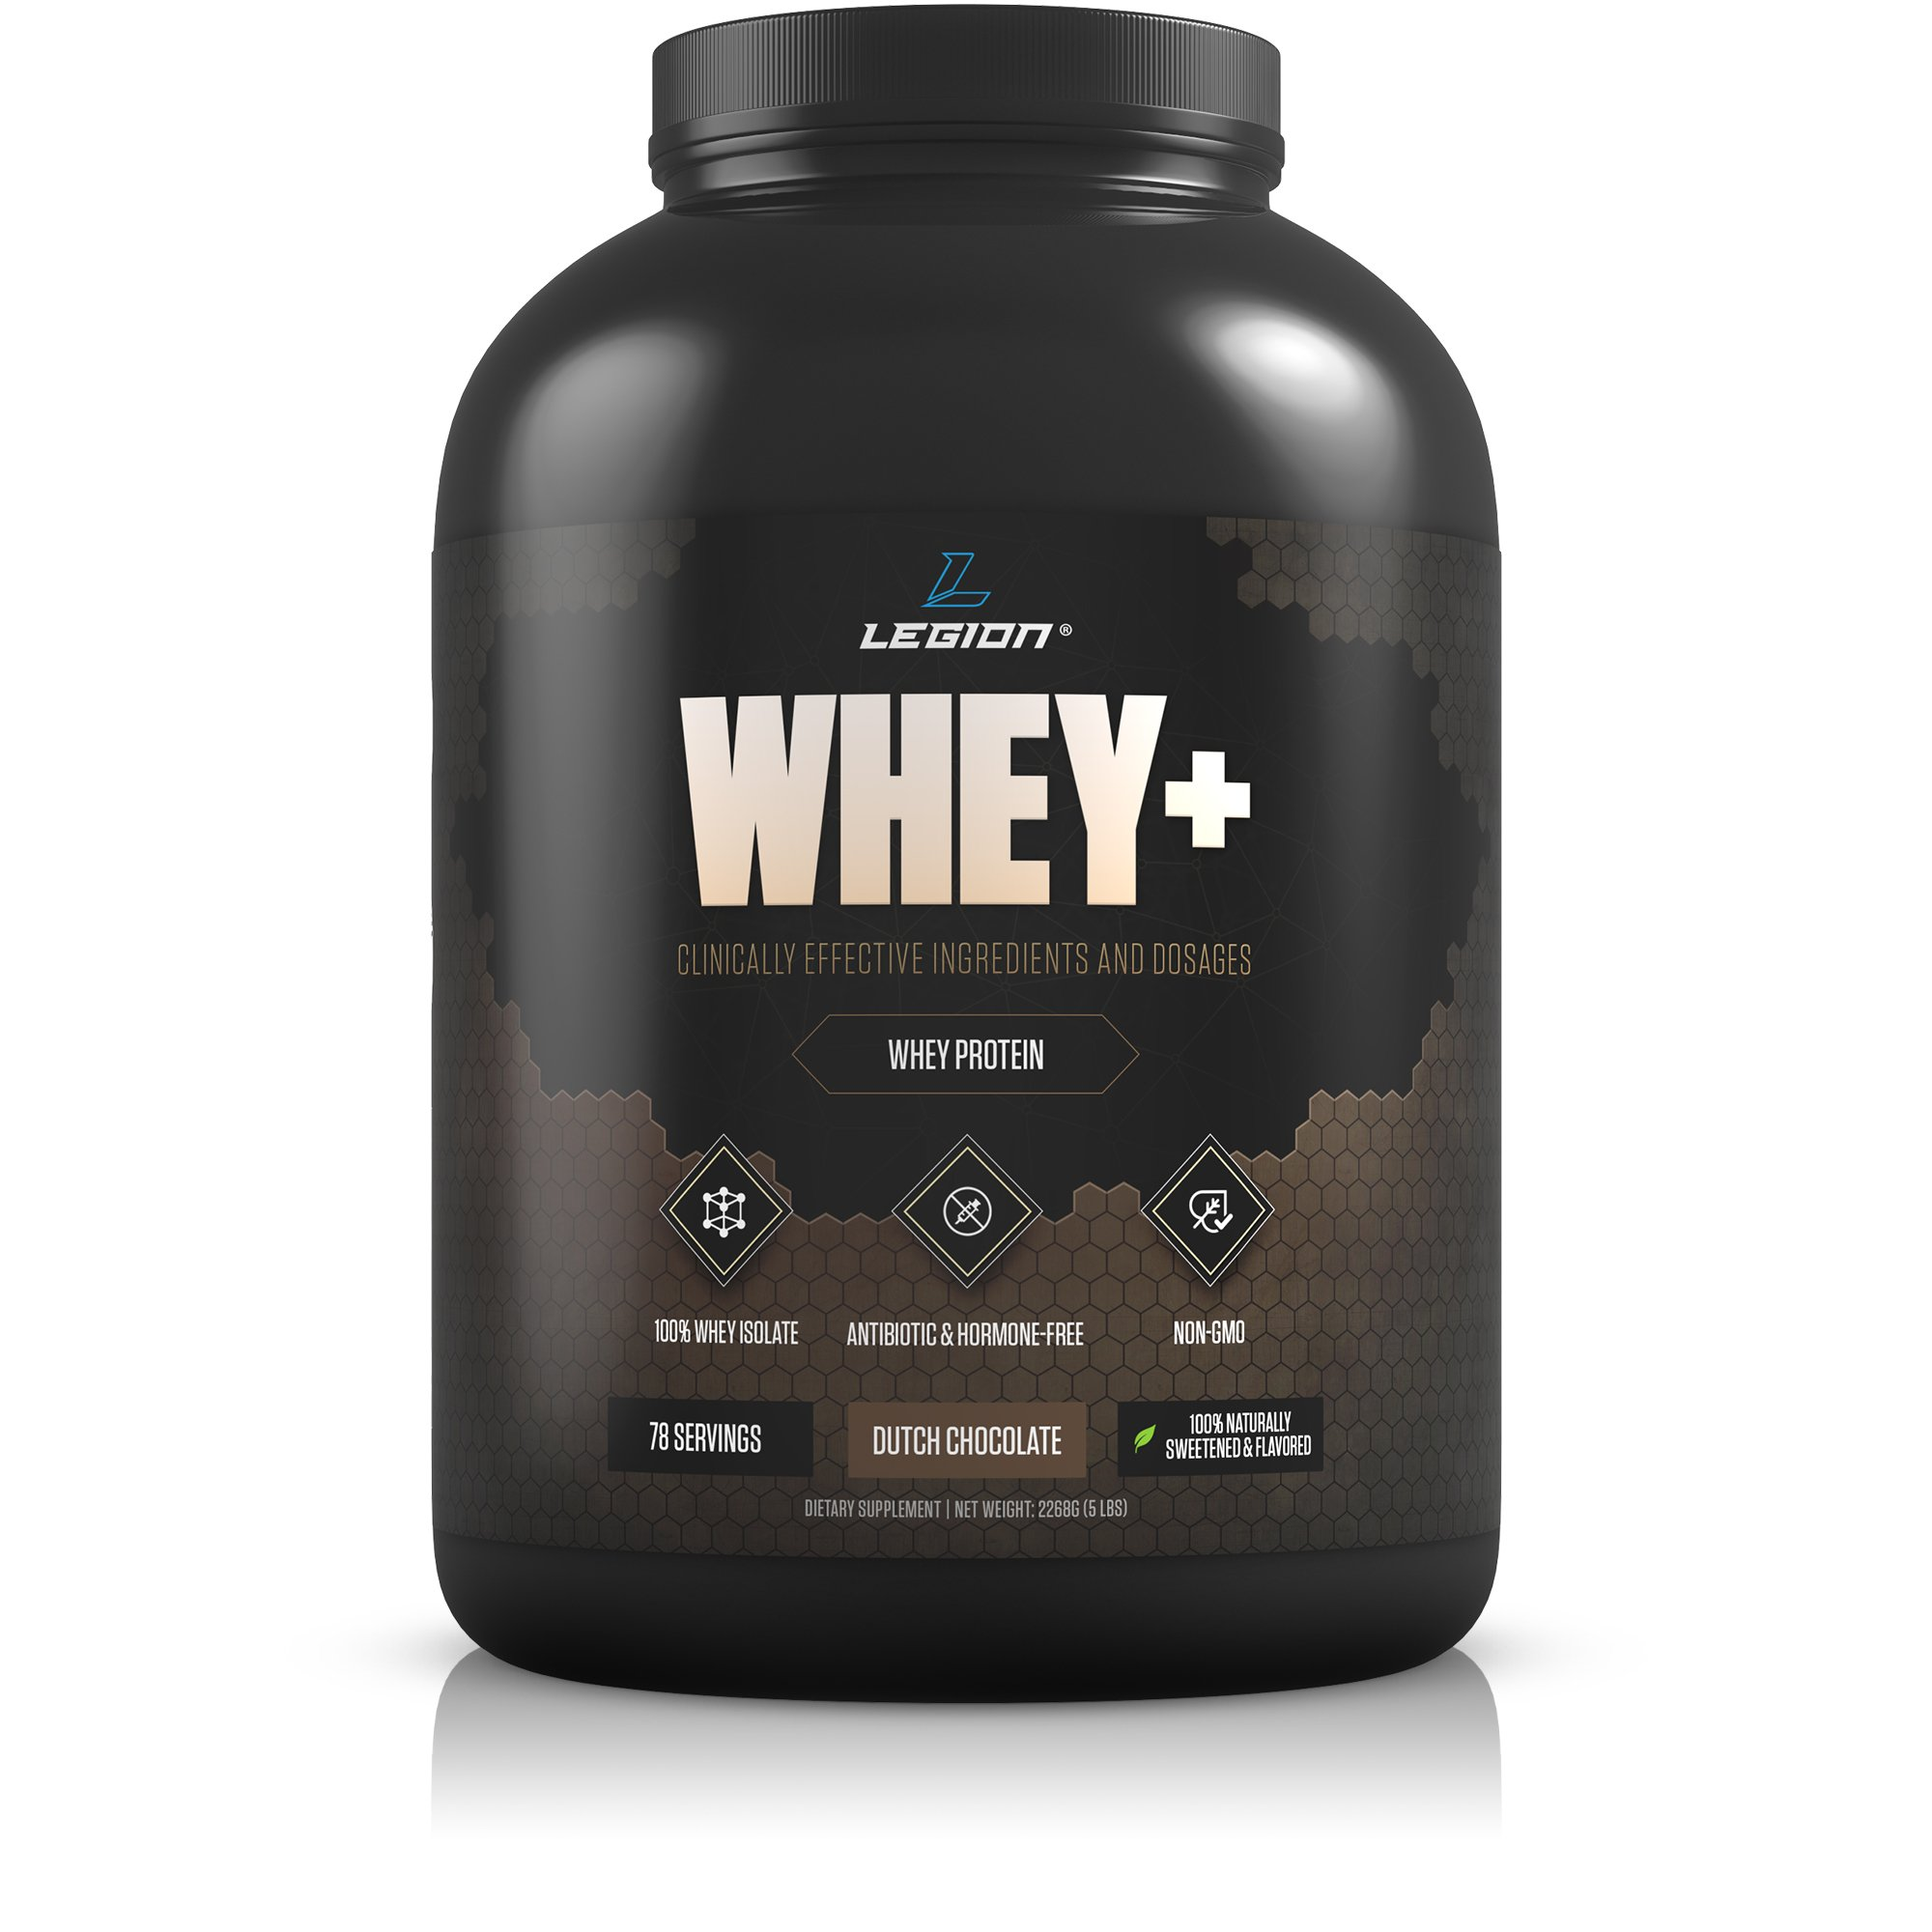 Legion Whey+ Chocolate Protein Powder 5lb. Best Tasting All Natural Whey Isolate Protein Shake From Grass Fed Cows For Bodybuilding, Weight Loss & Faster Recovery - Low Carb, Lactose Free, Sugar Free.